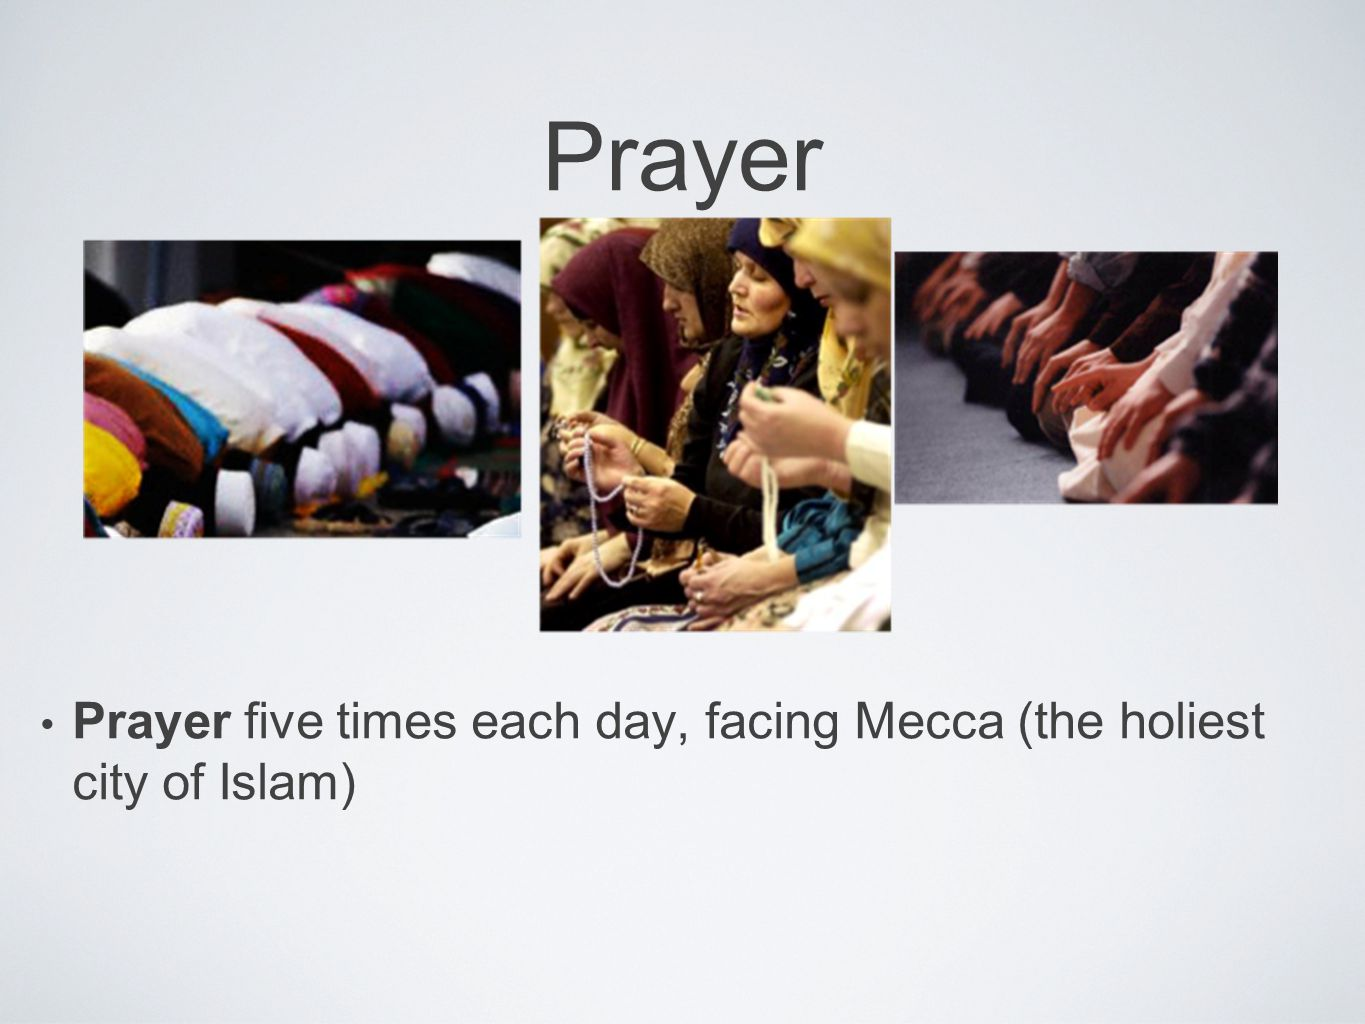 Prayer Prayer five times each day, facing Mecca (the holiest city of Islam)